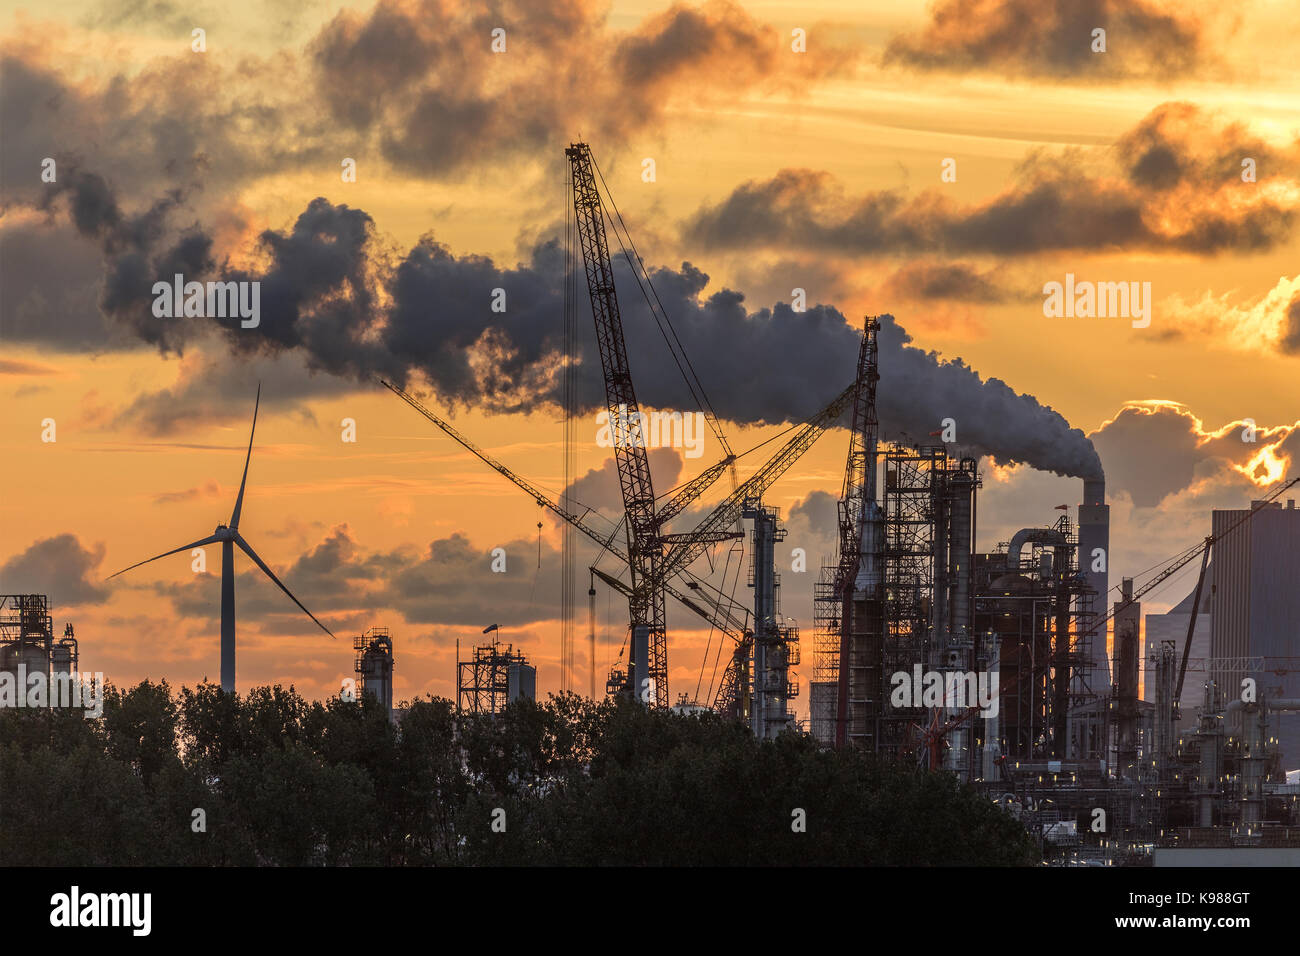 Industrial Pollution - An industrial skyline at dusk - Rotterdam in the Netherlands. - Stock Image